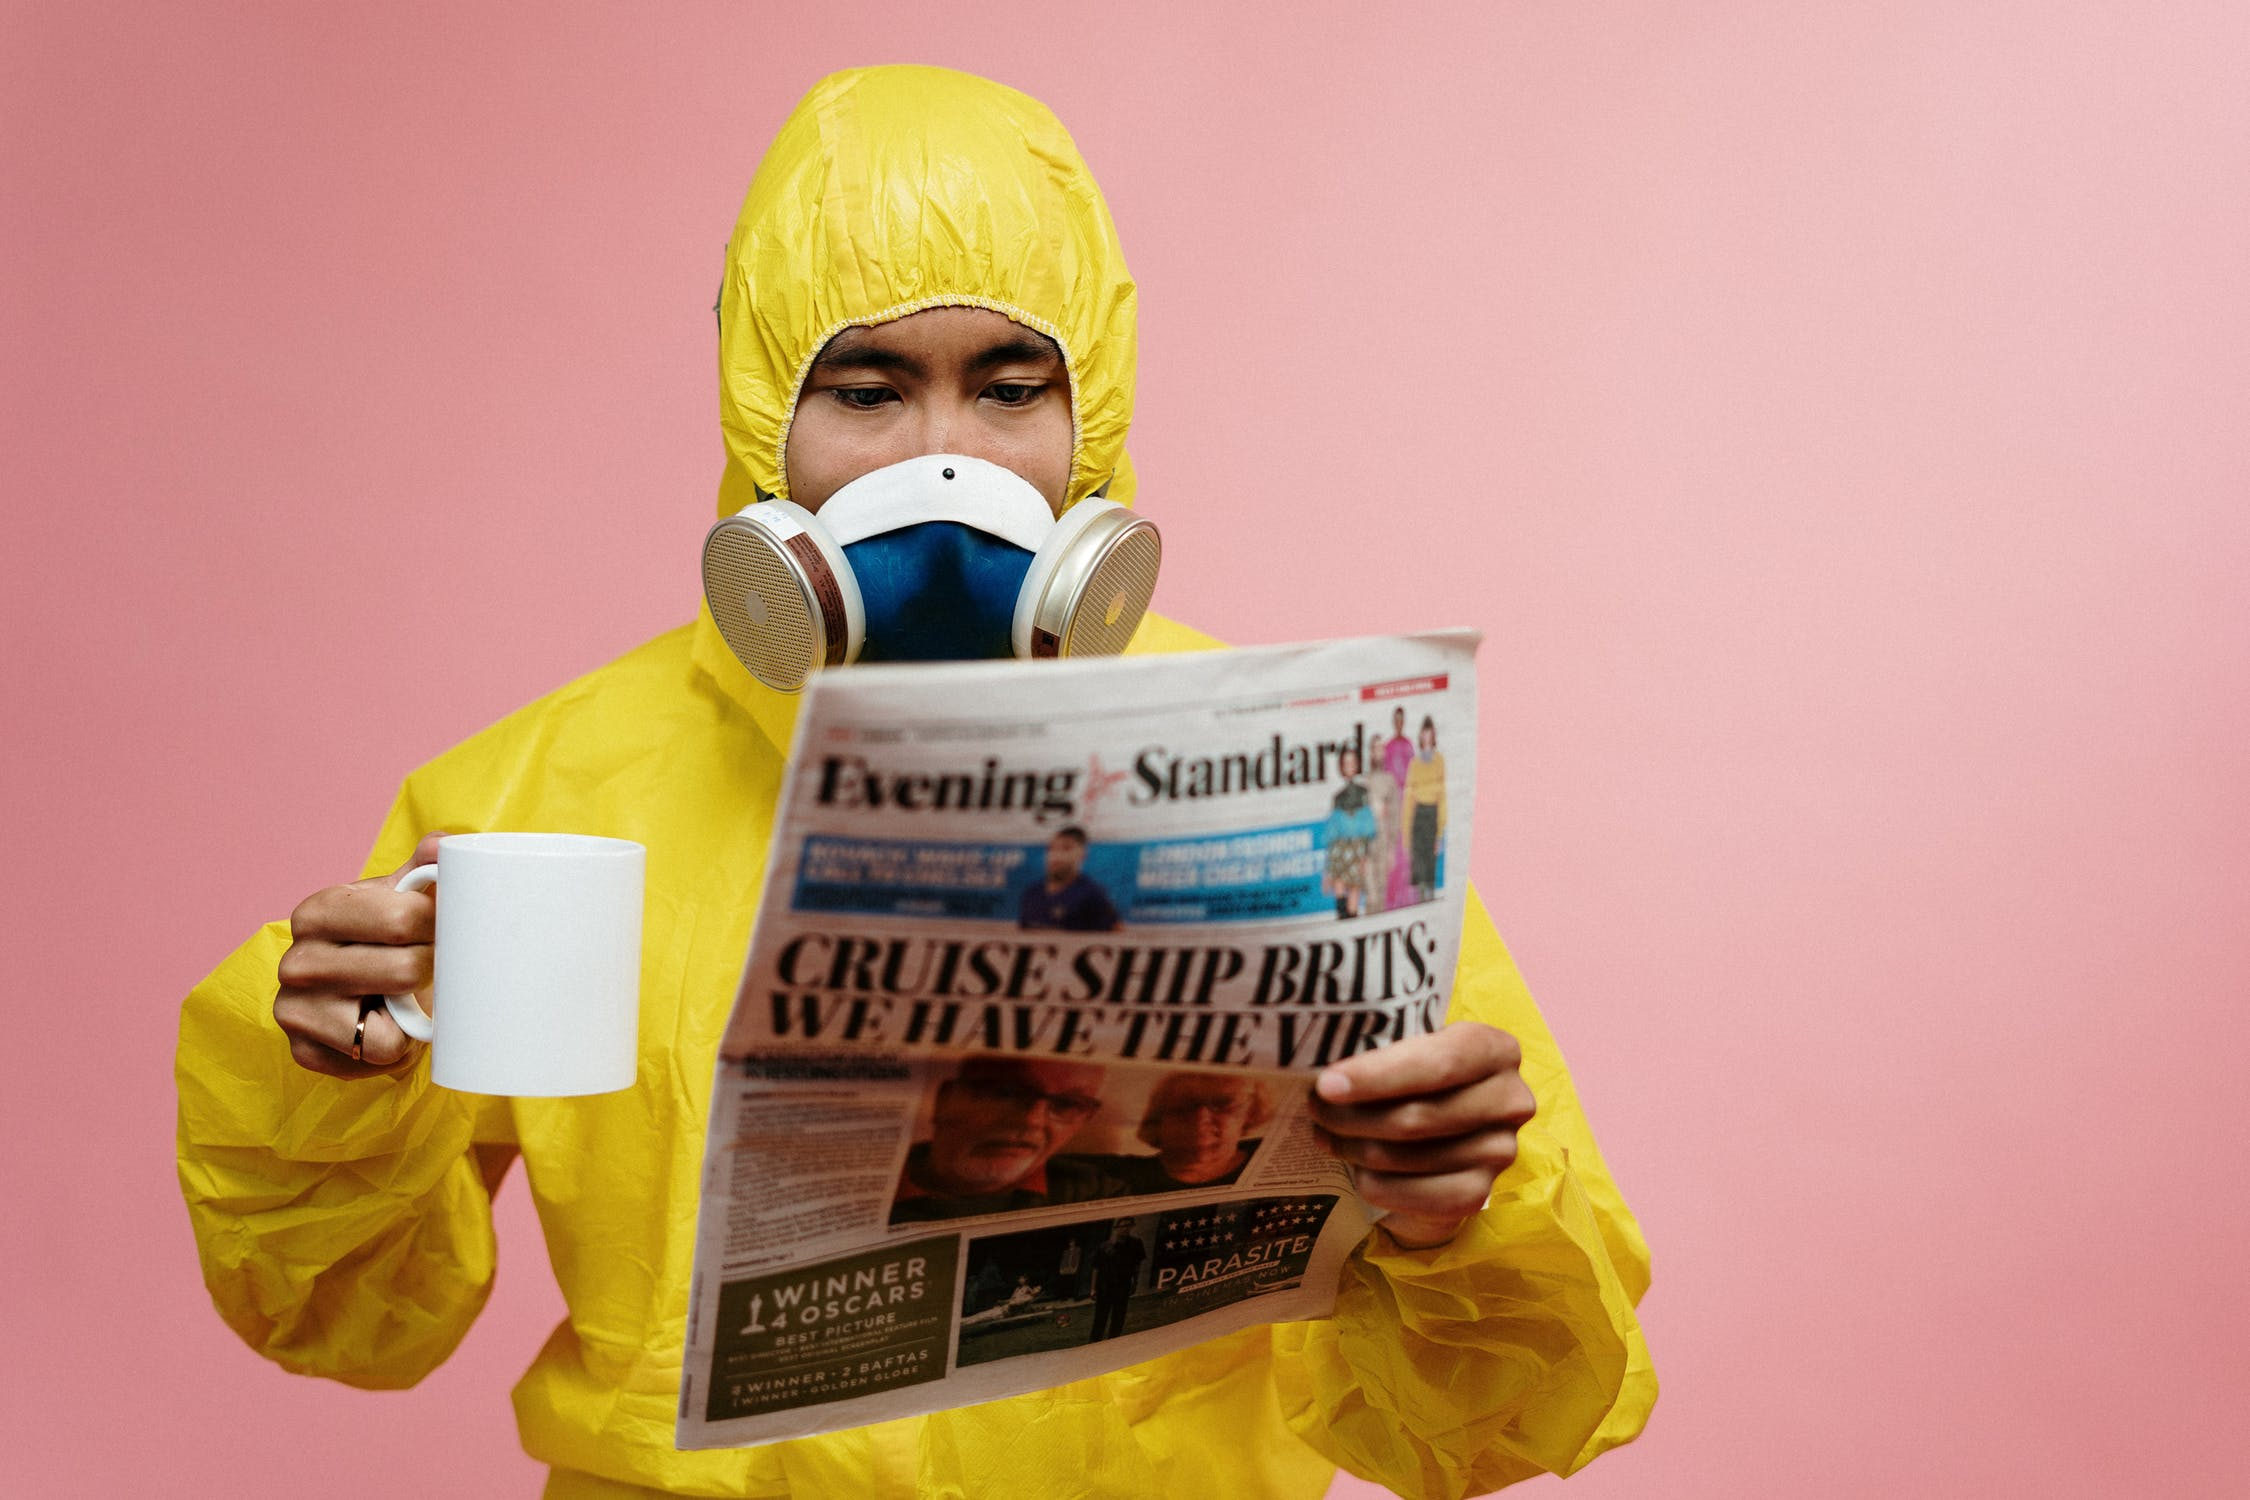 A man with a respirator, reading newspaper and drinking a cup of coffee